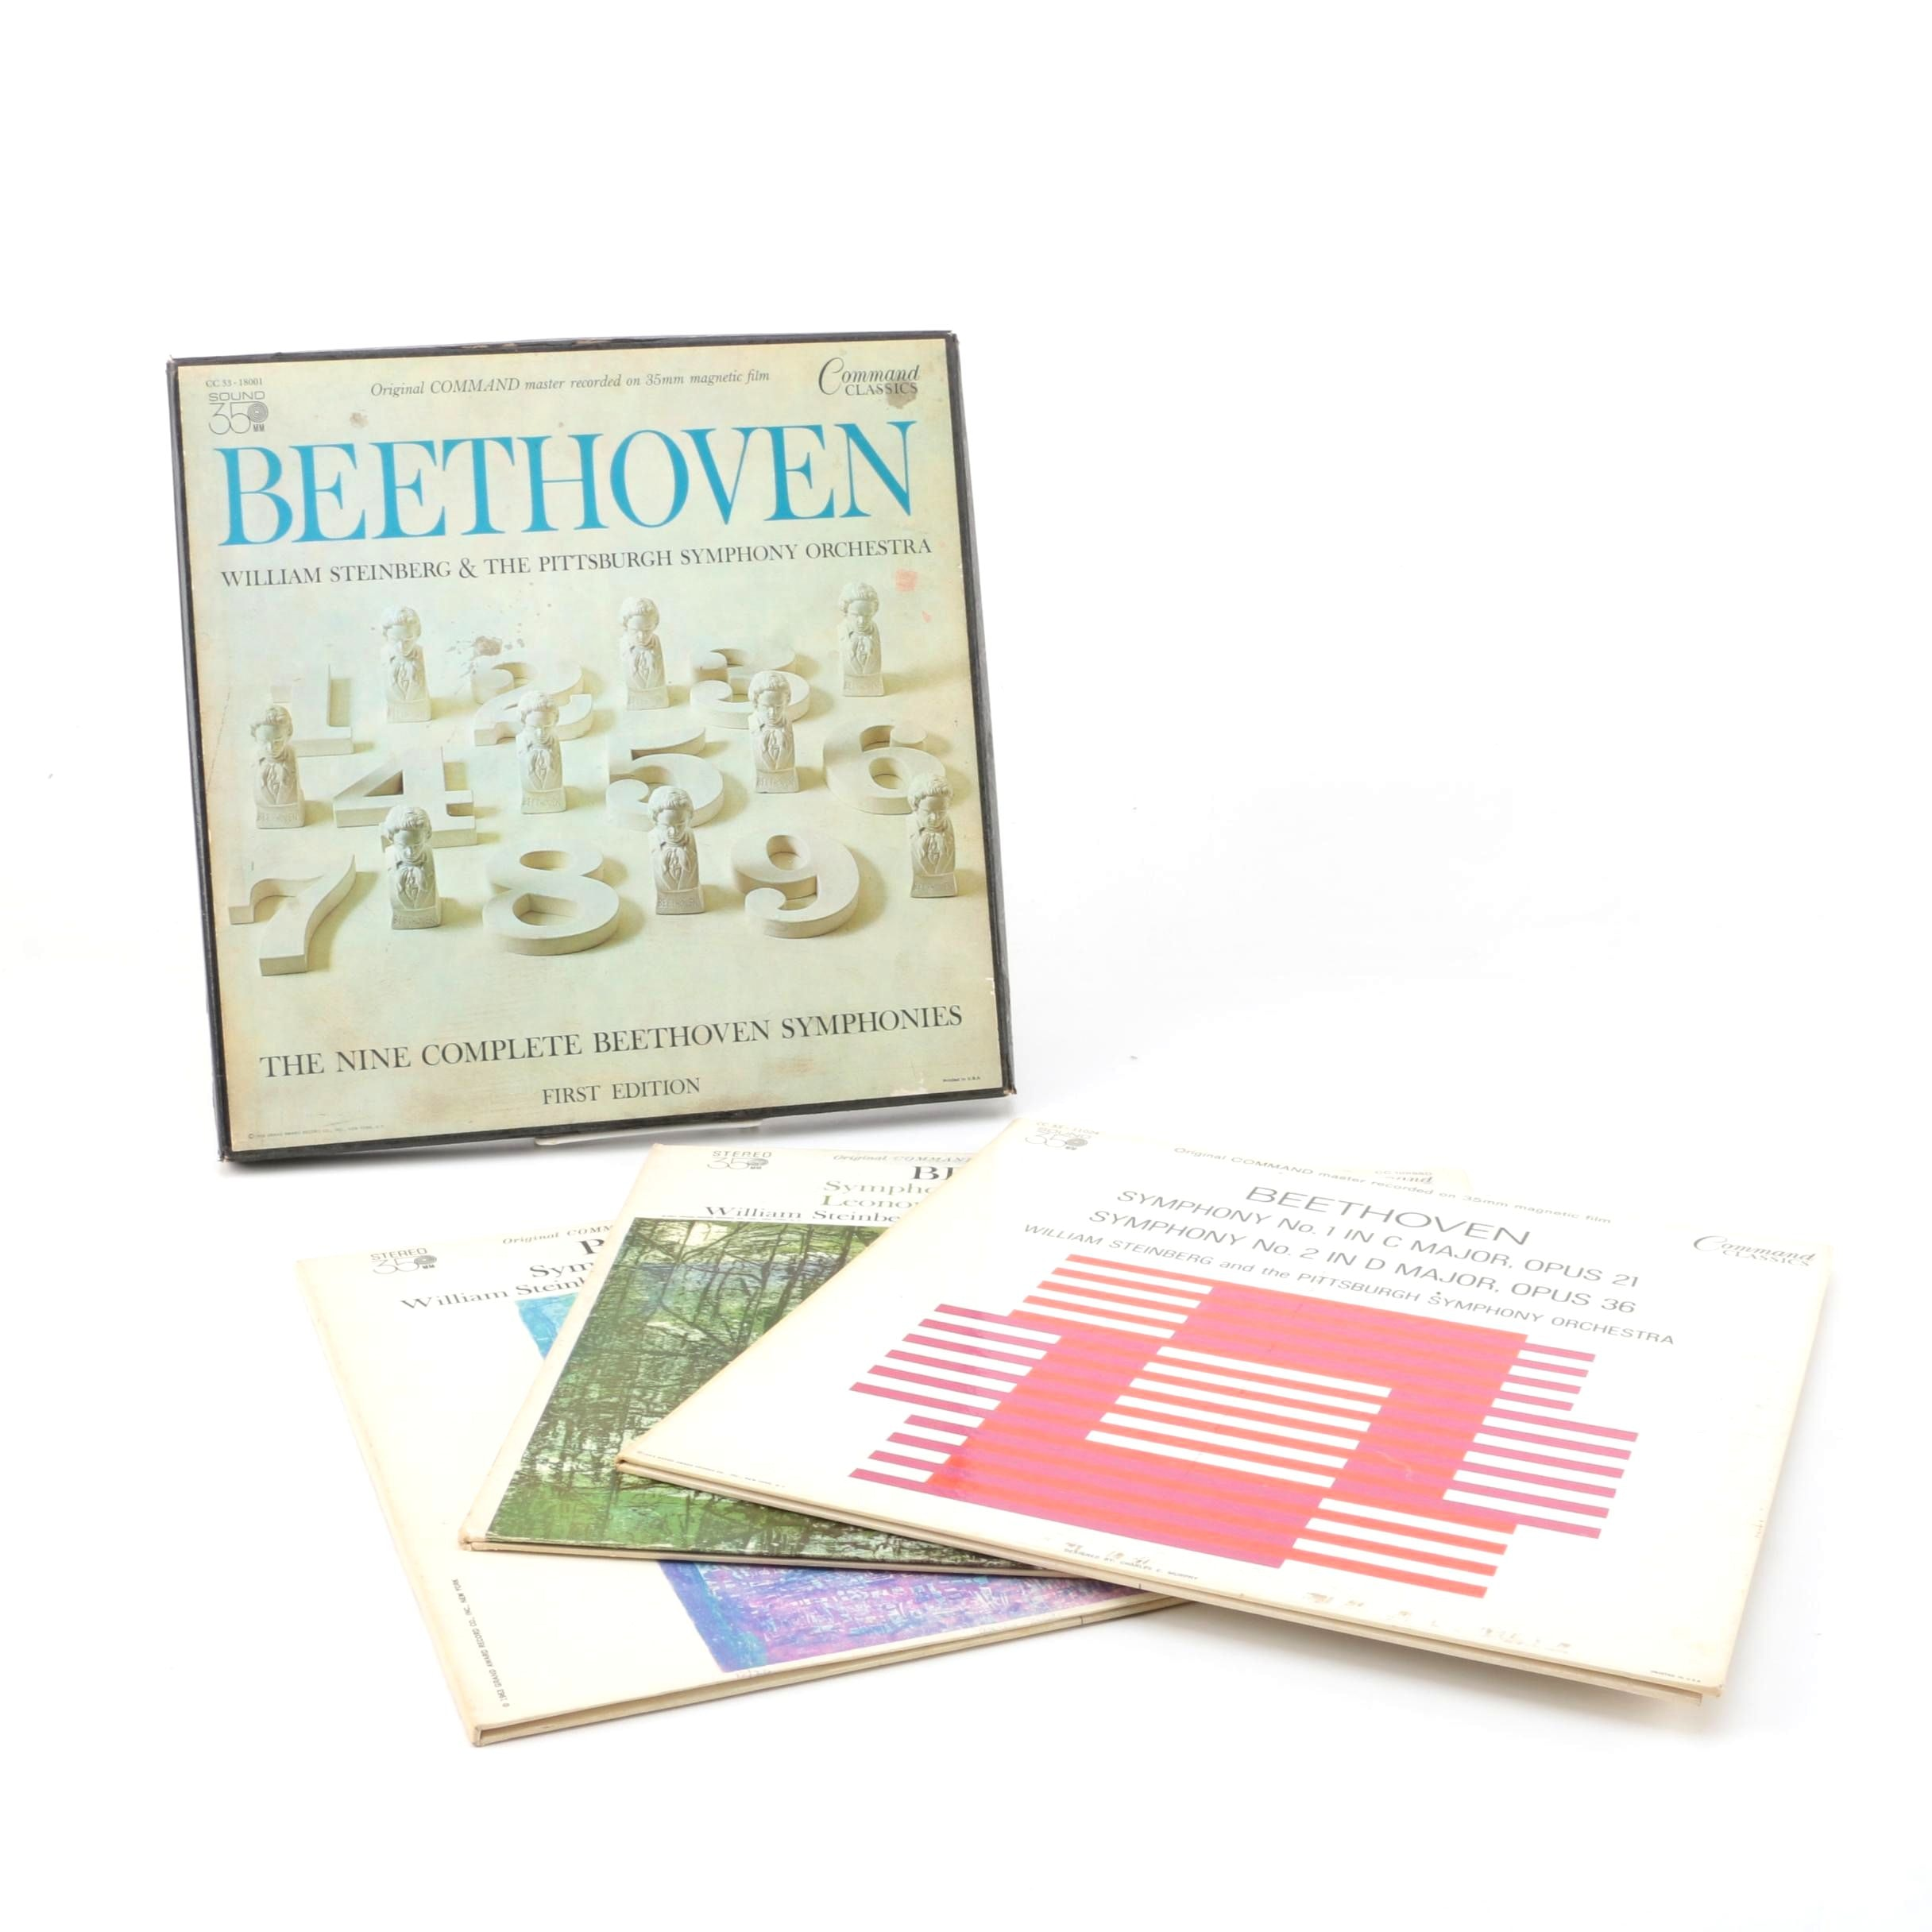 Beethoven Records and Boxed Set by the Pittsburgh Symphony Orchestra